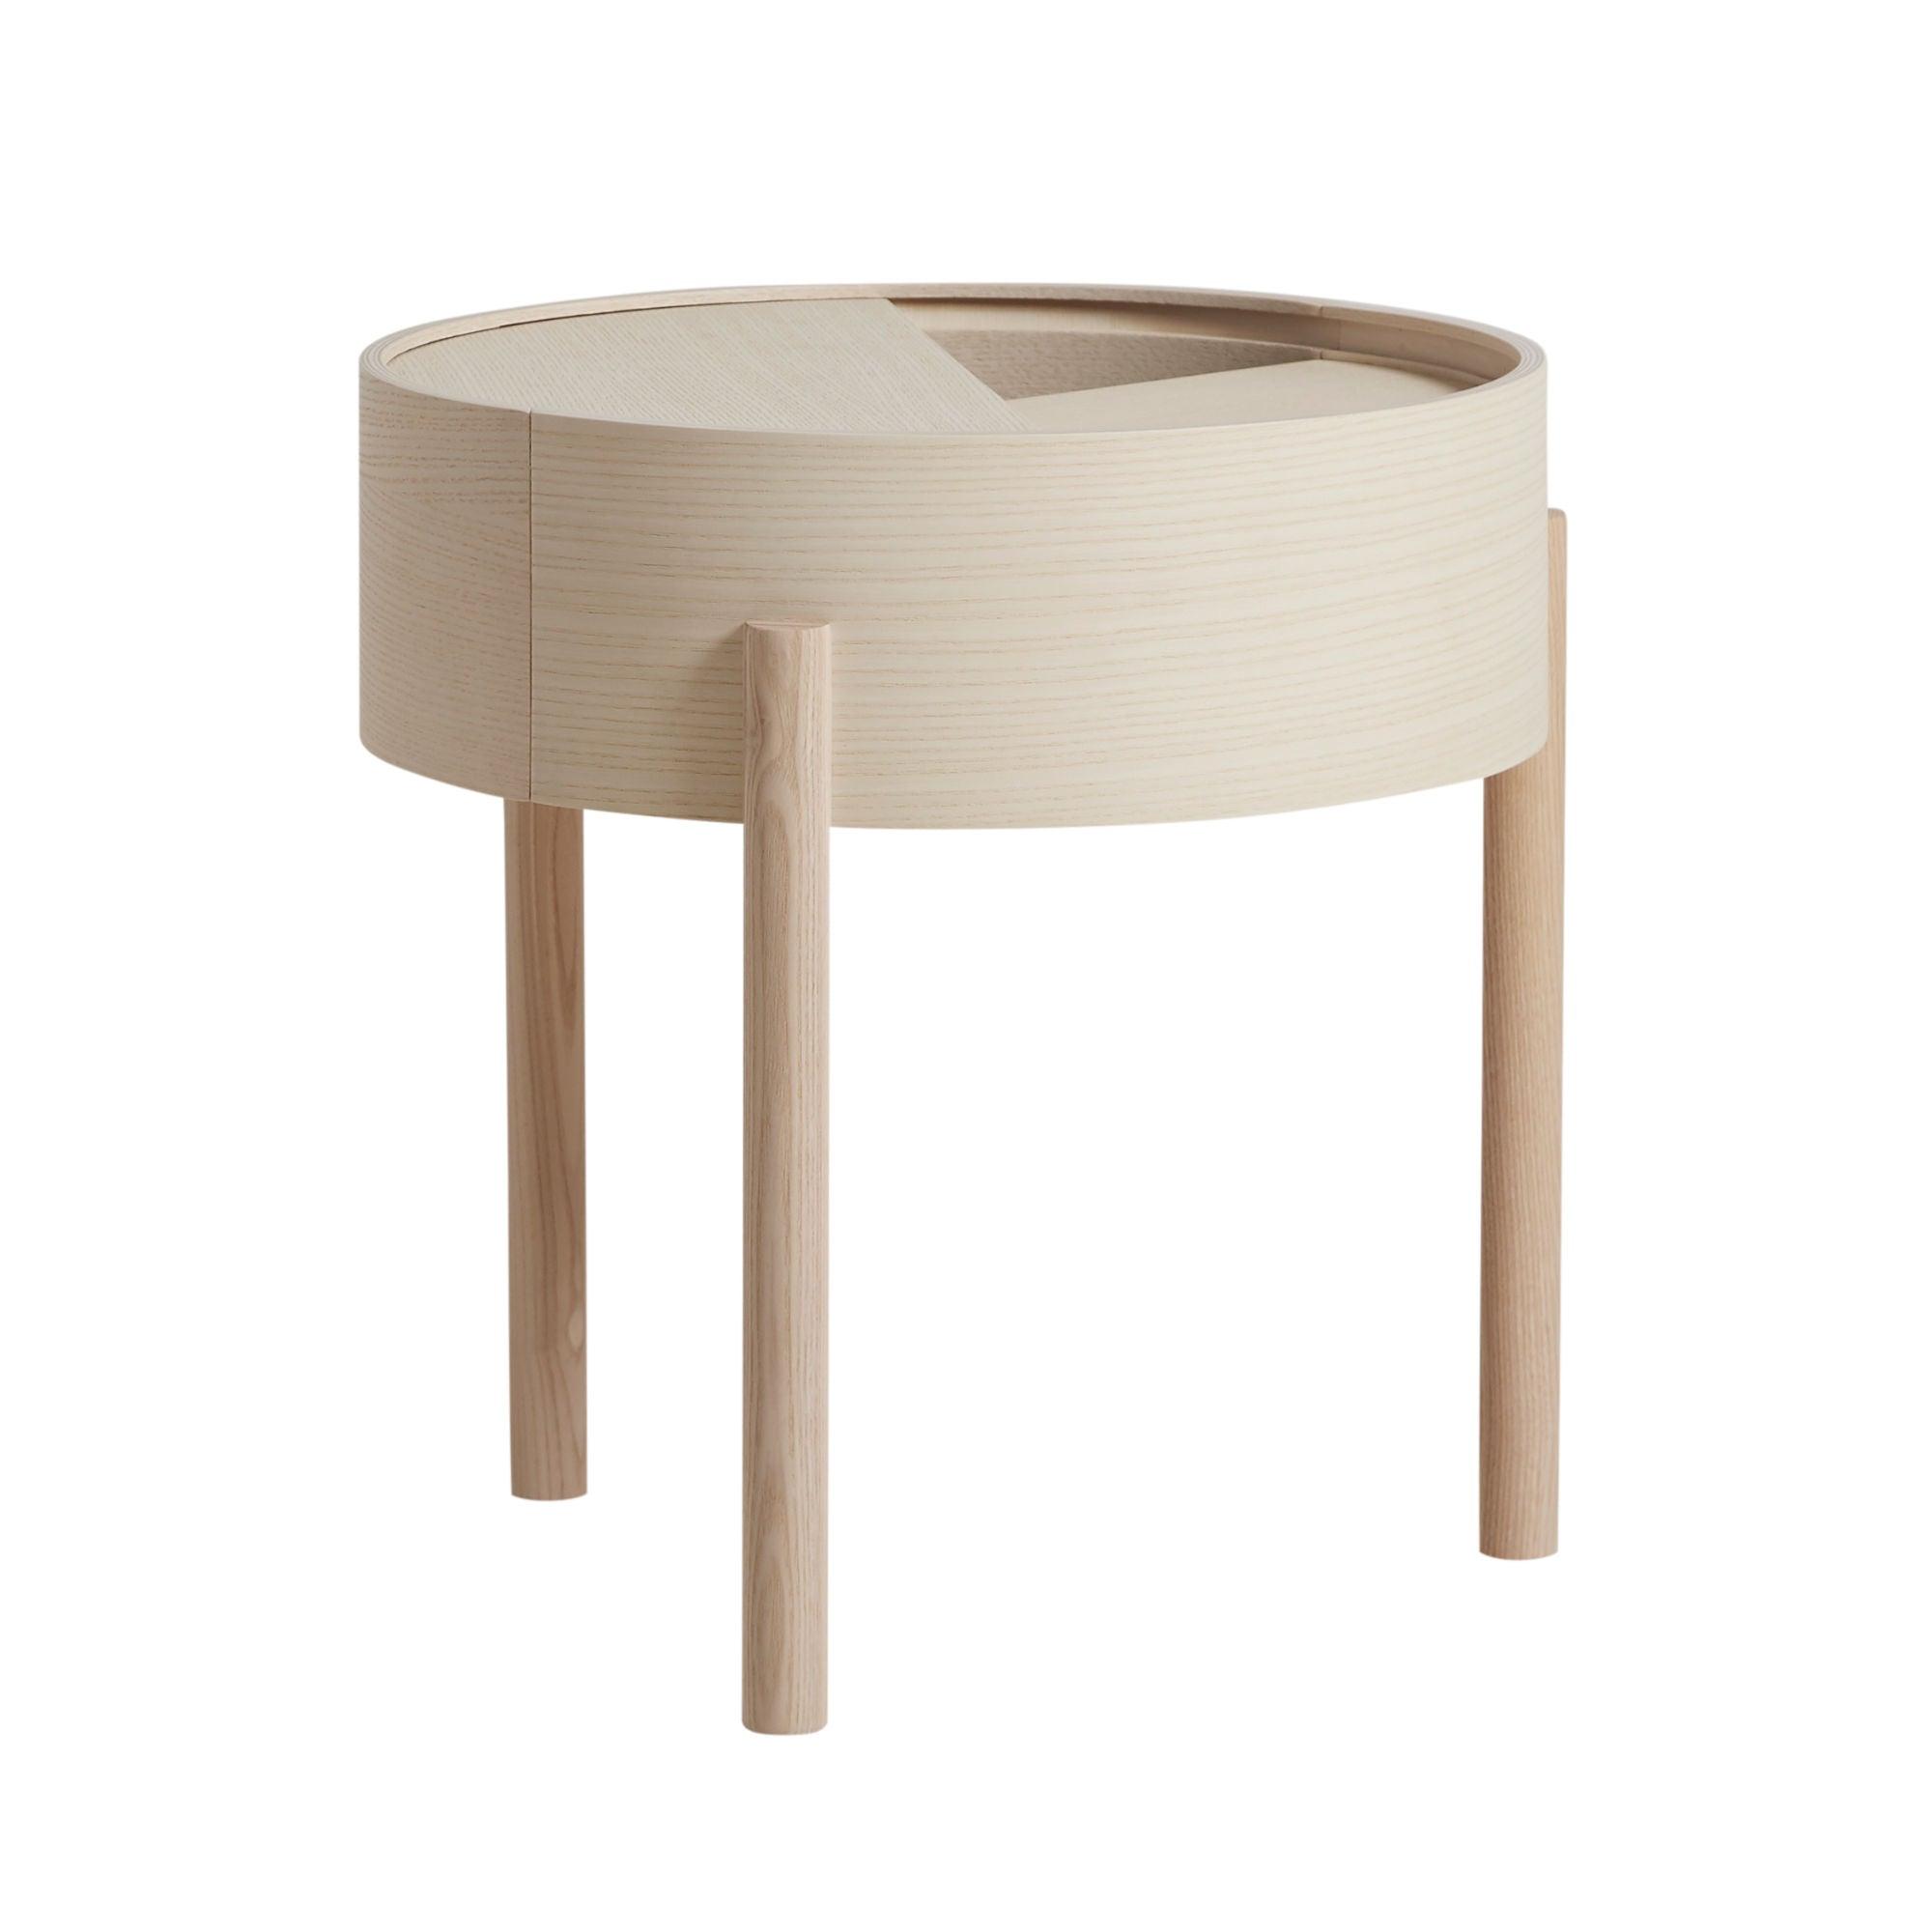 Woud Arc Side Table , White Pigmented Ash